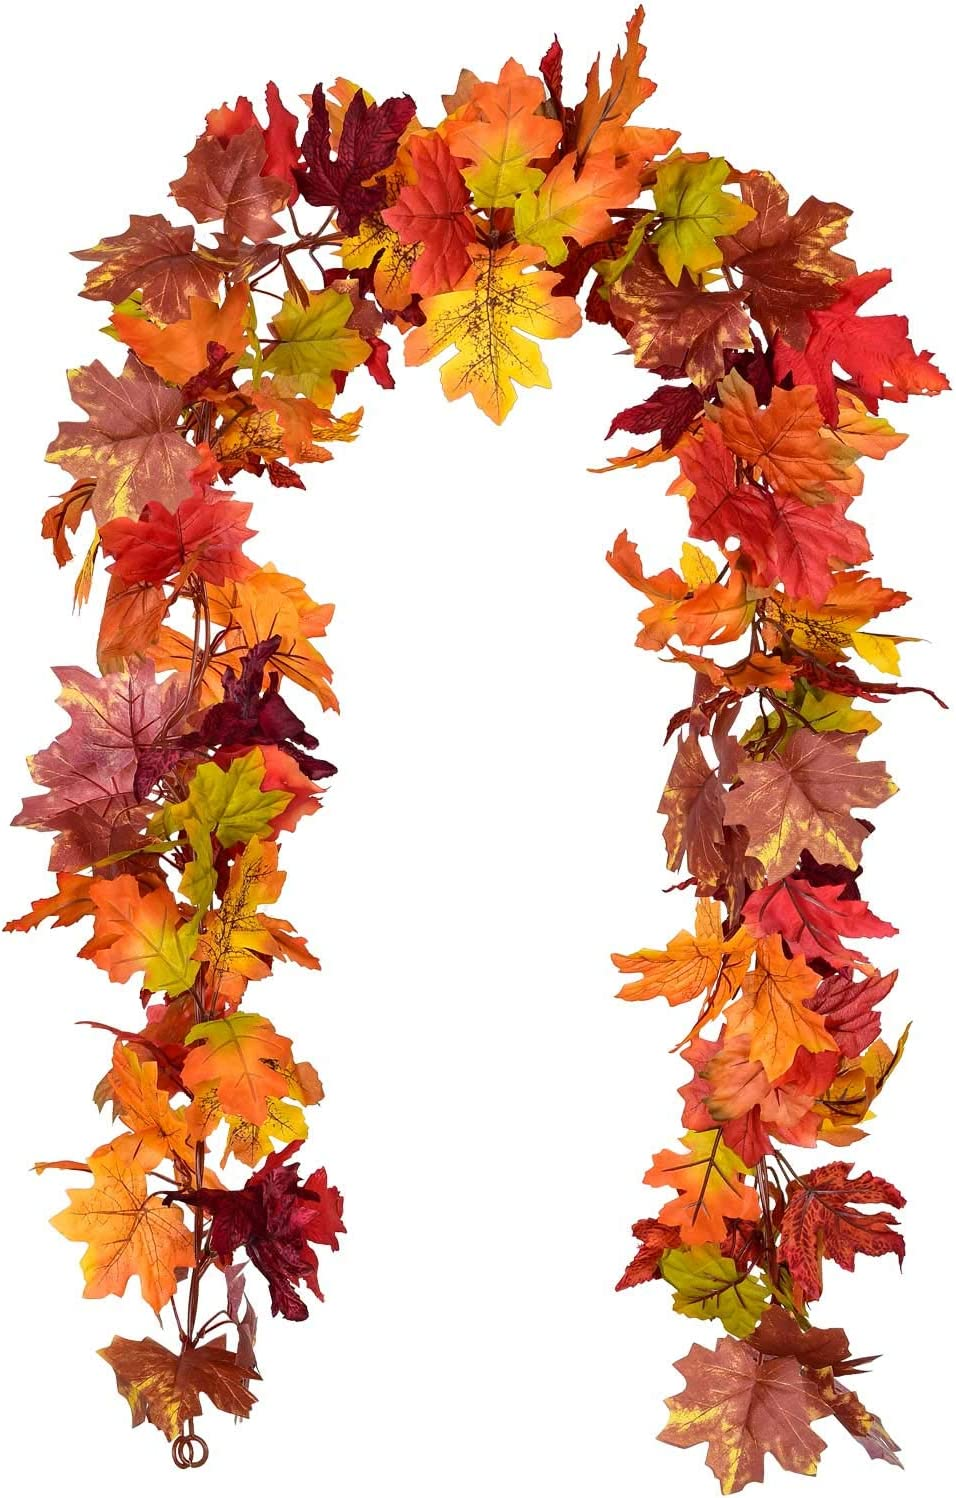 Lvydec 2 Pack Fall Garland Decoration - 5.8ft/Strand Artificial Maple Garland Colorful Leaves Autumn Decor for Home Wedding Party Thankgiving (Mixed Color)